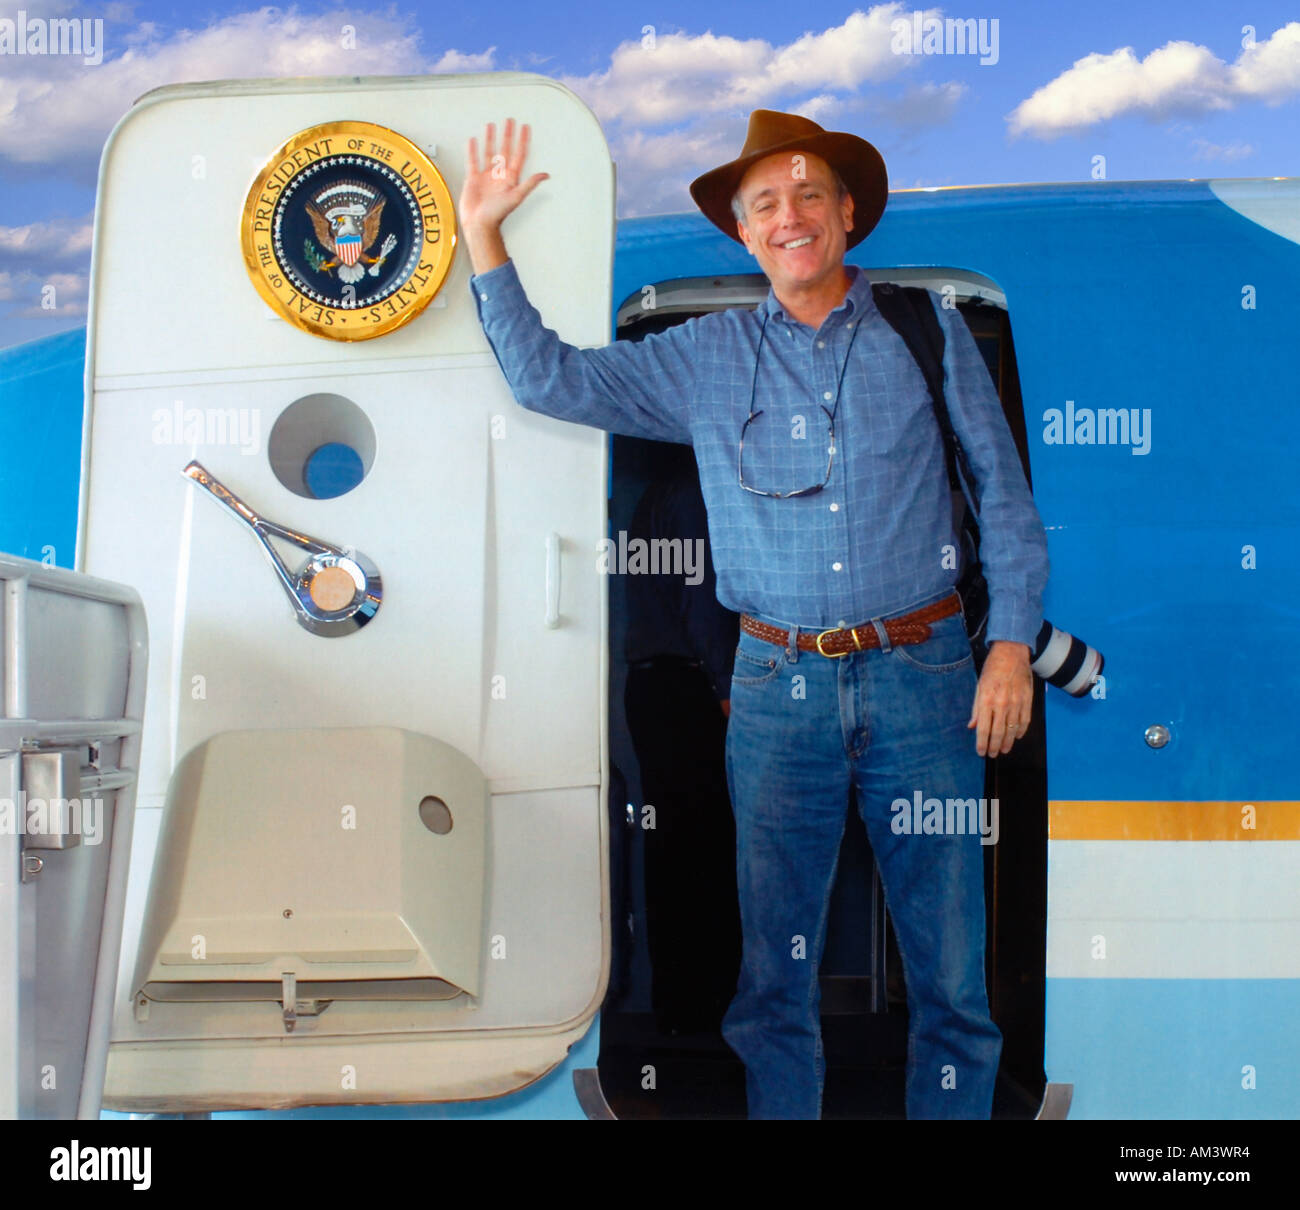 Photographer Joe Sohm posing with Air Force One on display at the Reagan Library Simi Valley CA - Stock Image